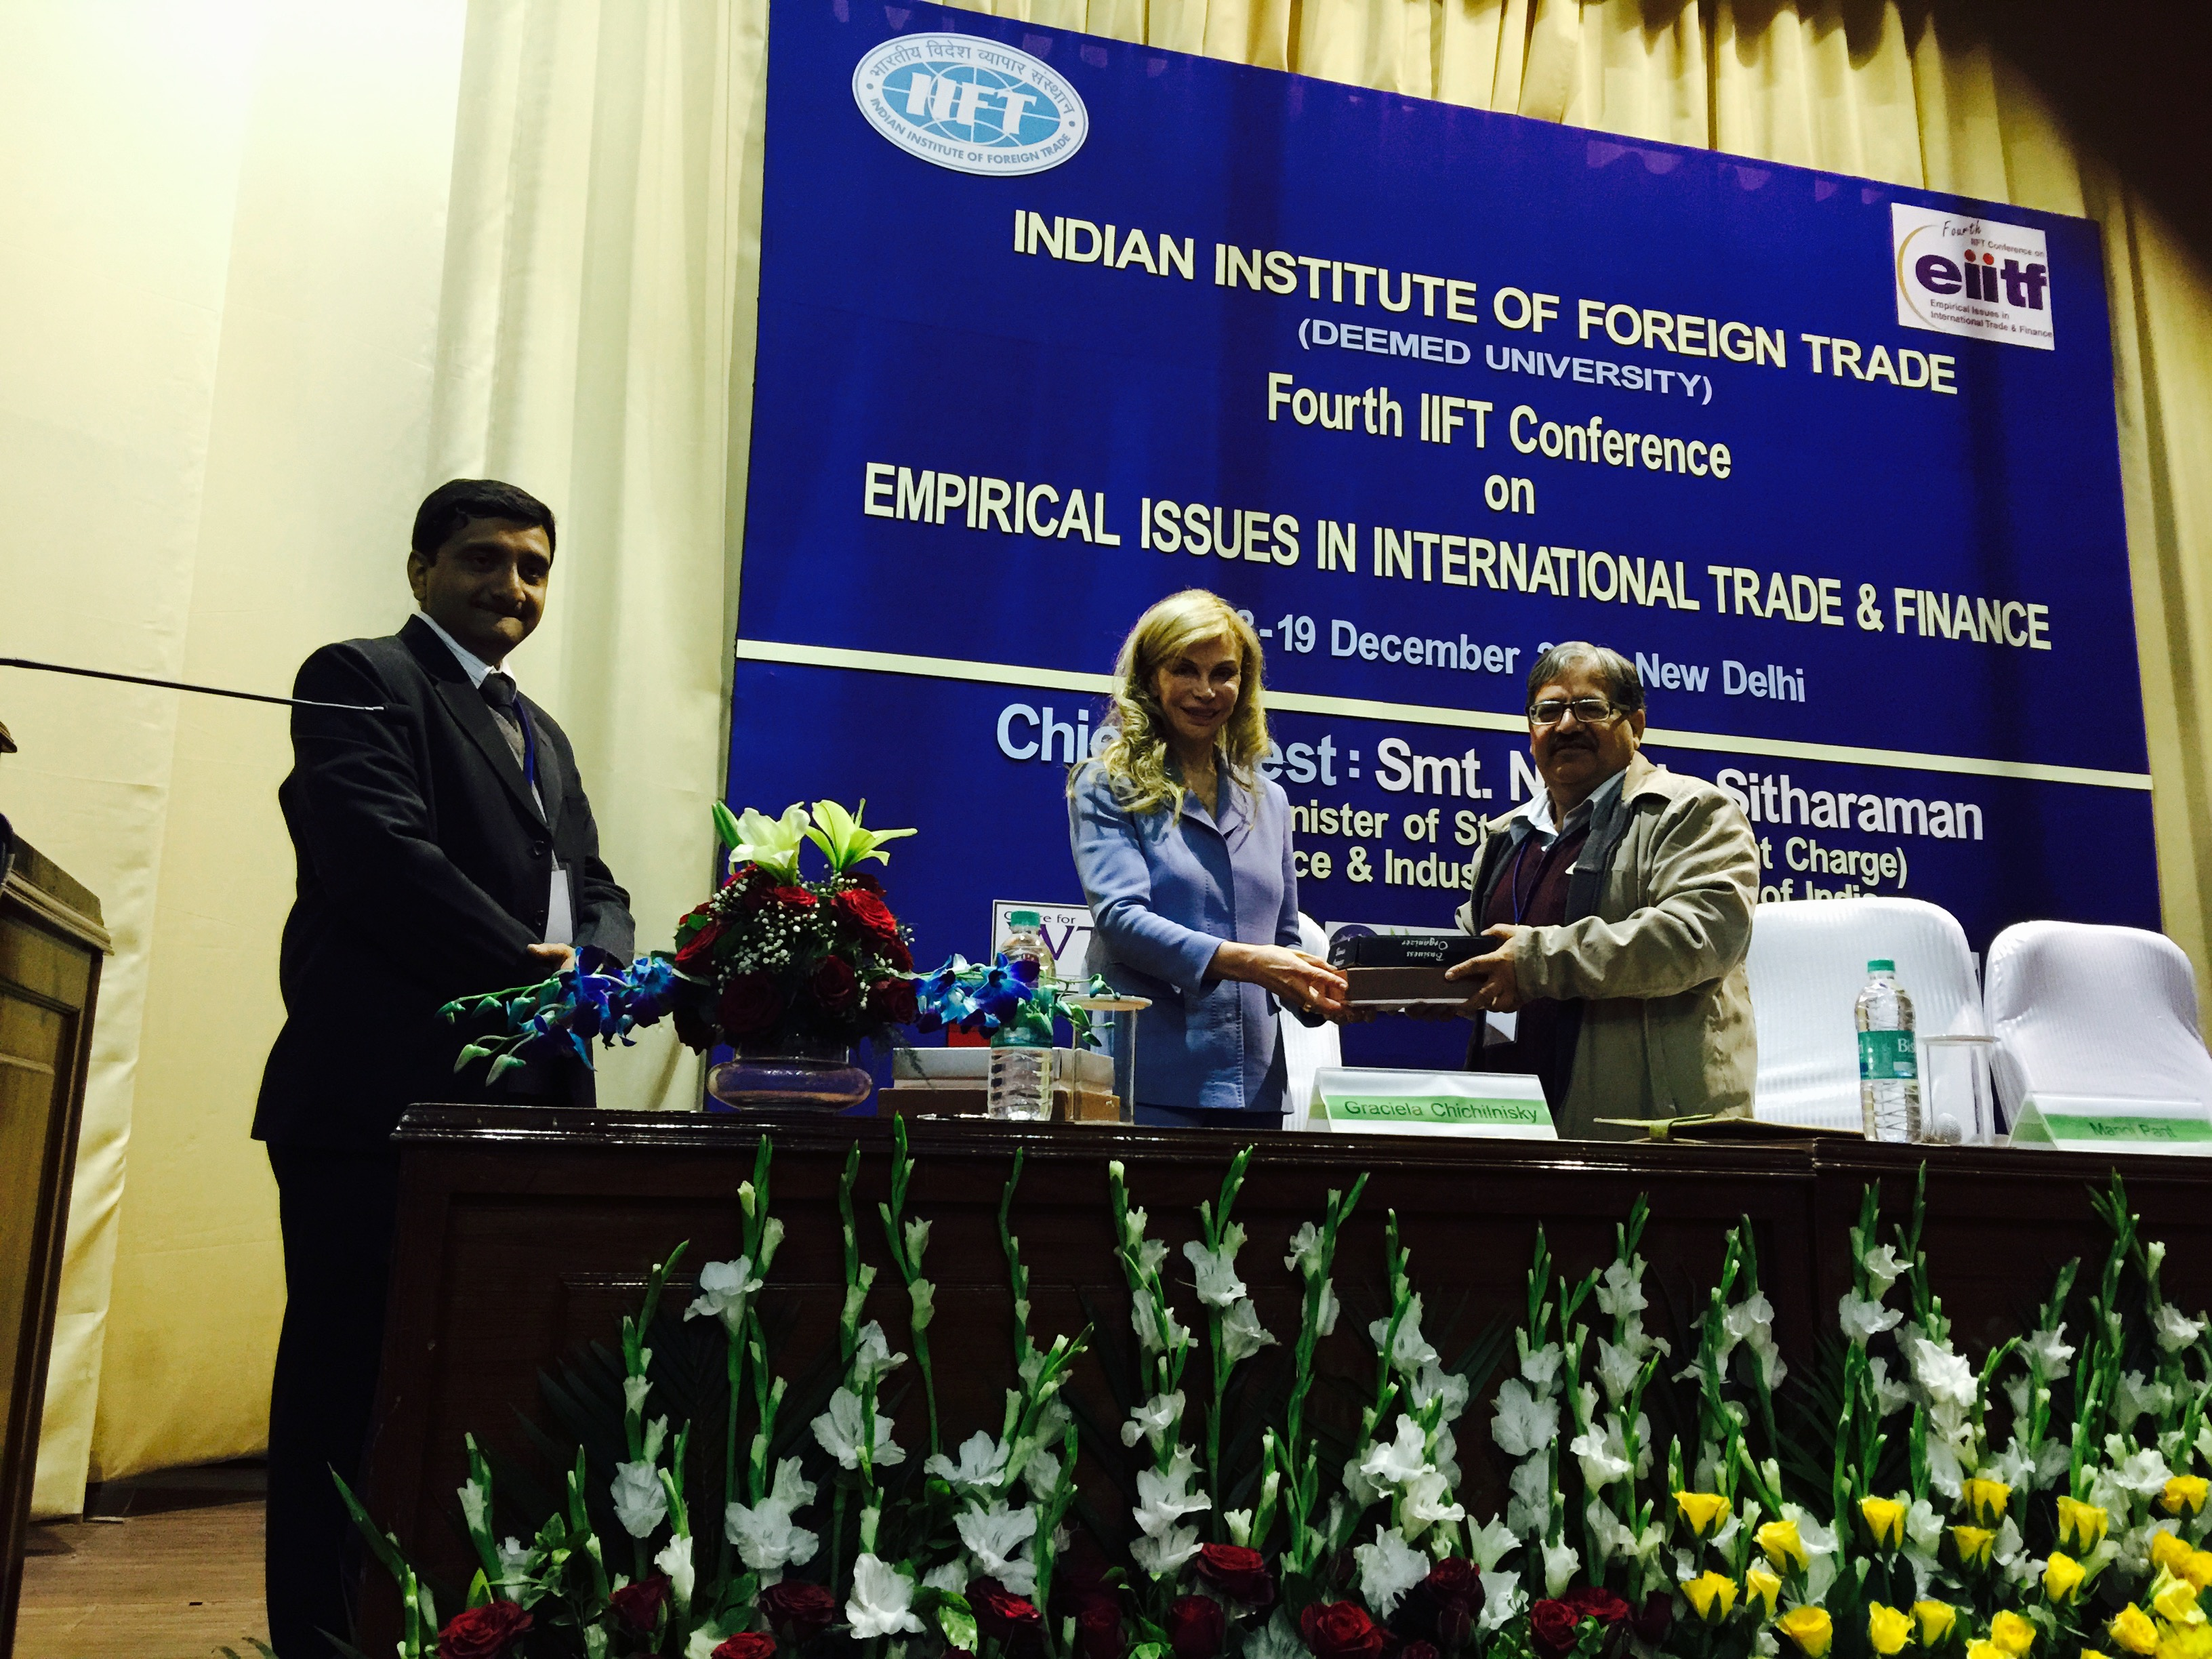 Graciela receiving an award at the Indian Institute of Foreign Trade's fourth IIFT conference for her key note opening speech titled